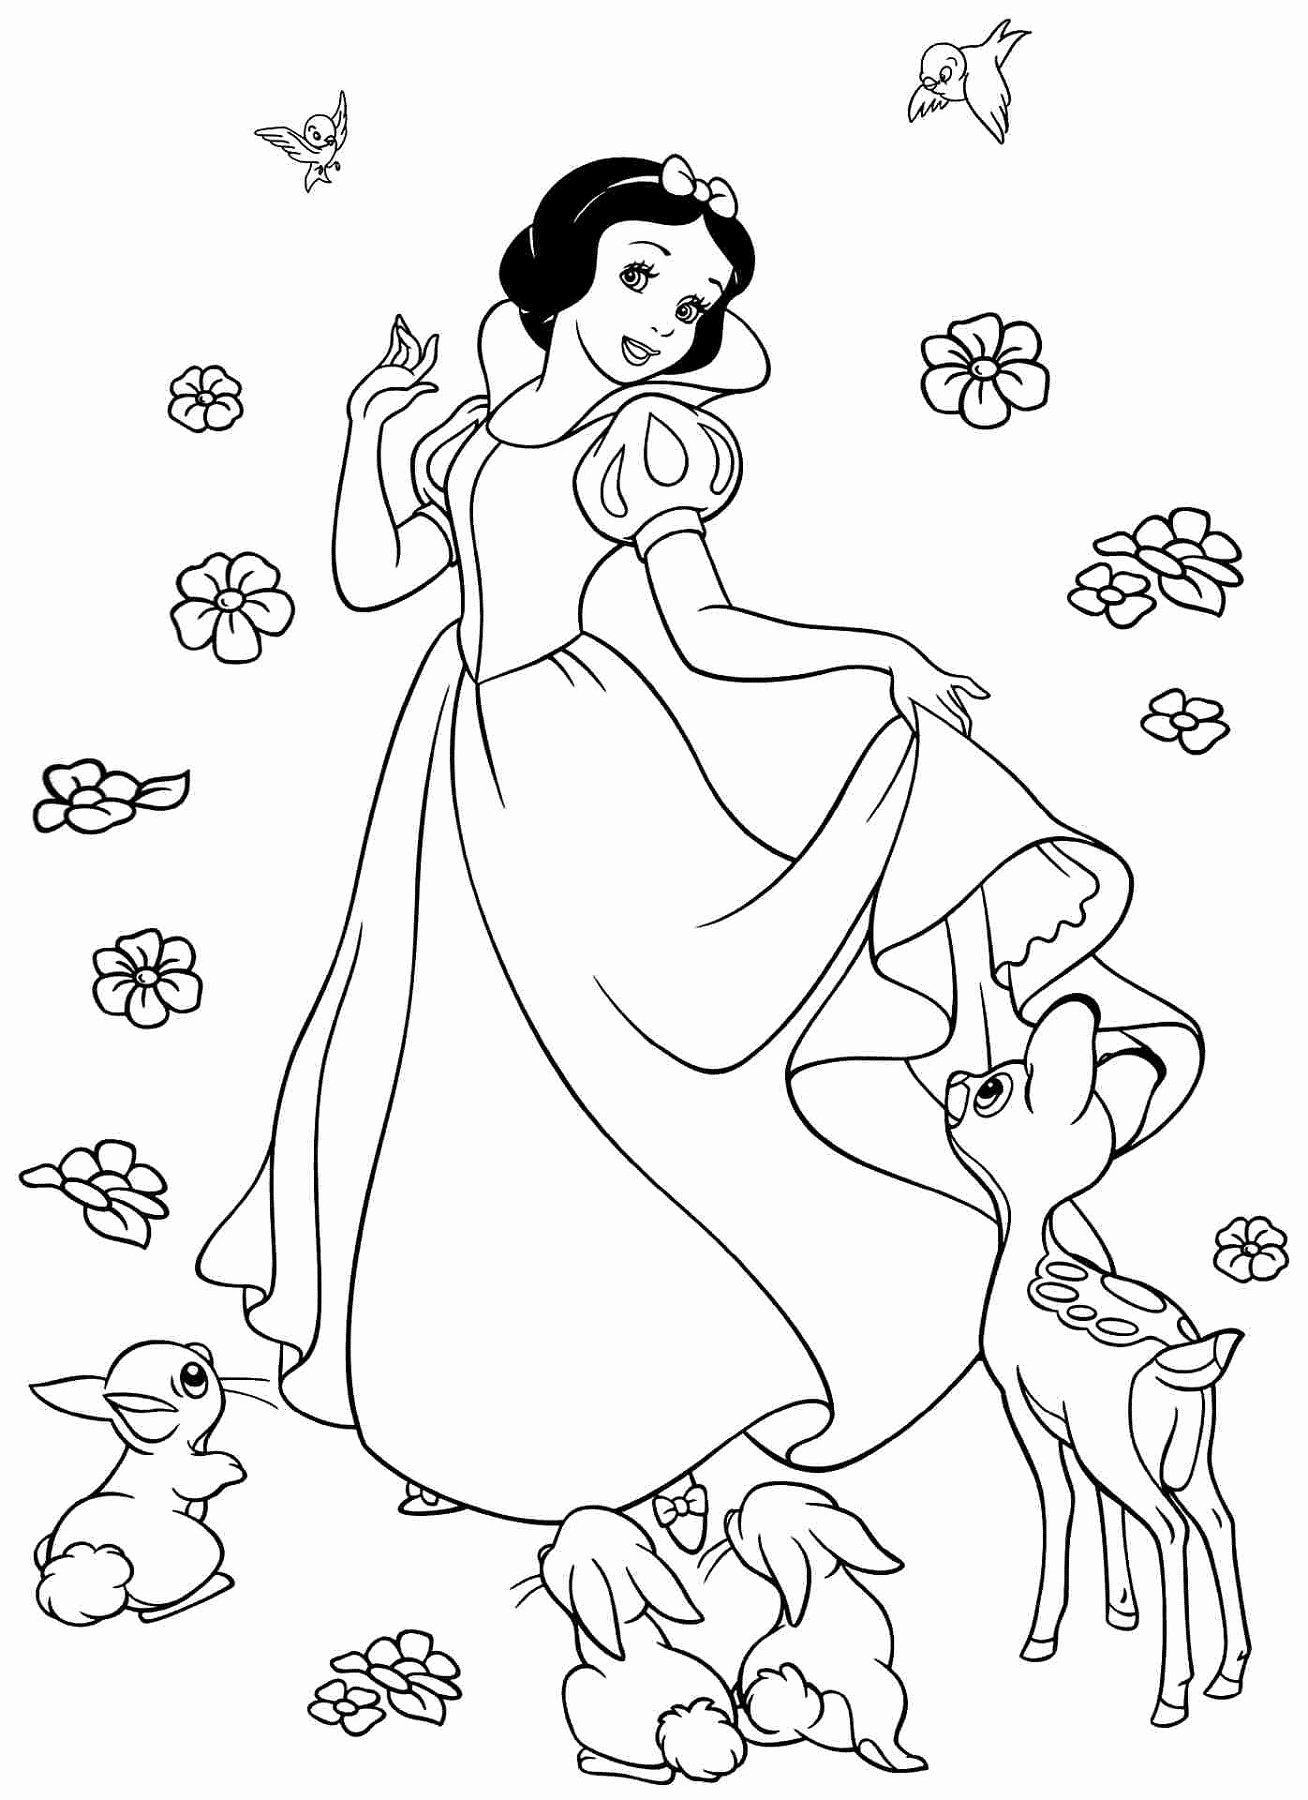 Disney Snow White Coloring Pages Awesome Snow White Color Pages To Print Disney Princess Coloring Pages Snow White Coloring Pages Princess Coloring Pages